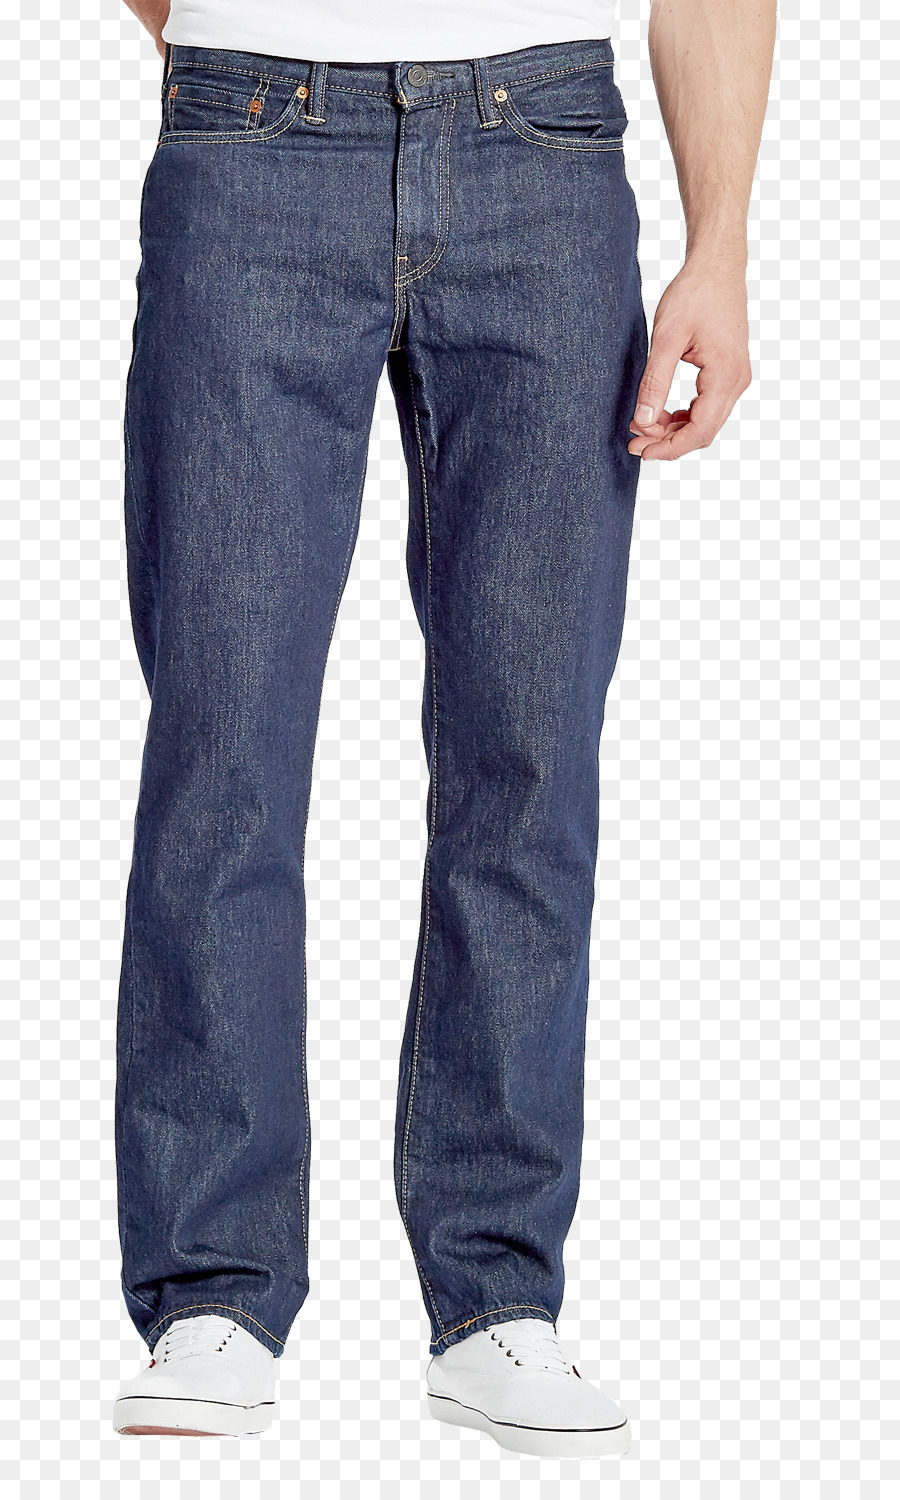 f349a7b7192 Levi Strauss & Co. T-shirt Jeans Levi's 501 Clothing - levis png ...